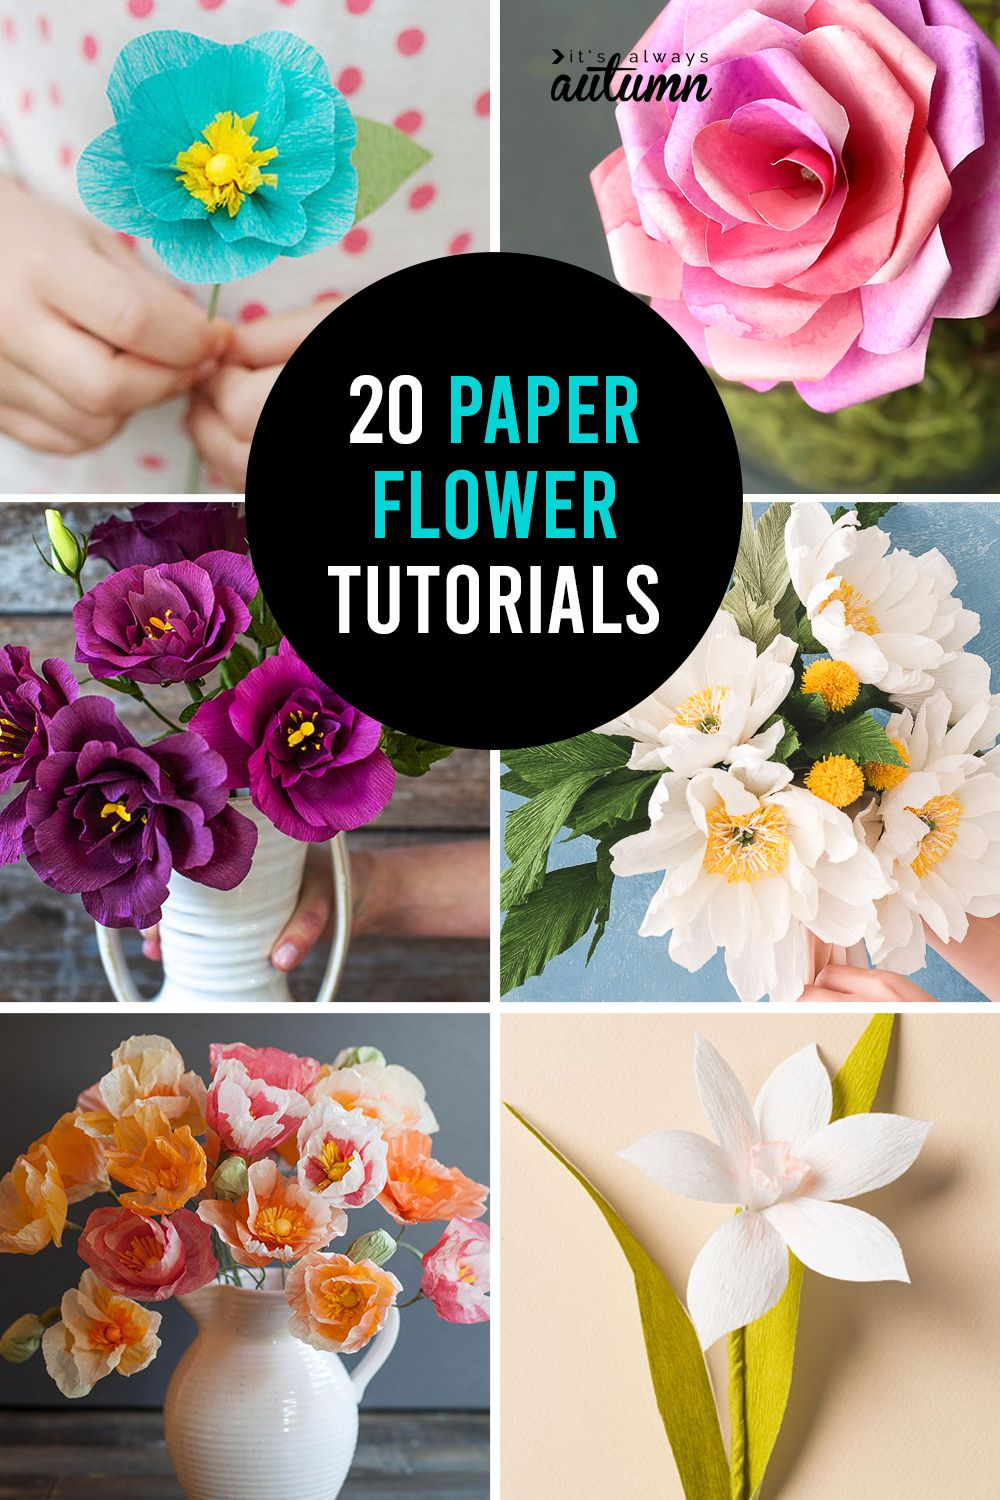 How to make paper flowers - 20 gorgeous DIY paper flower tutorials #paperflowers